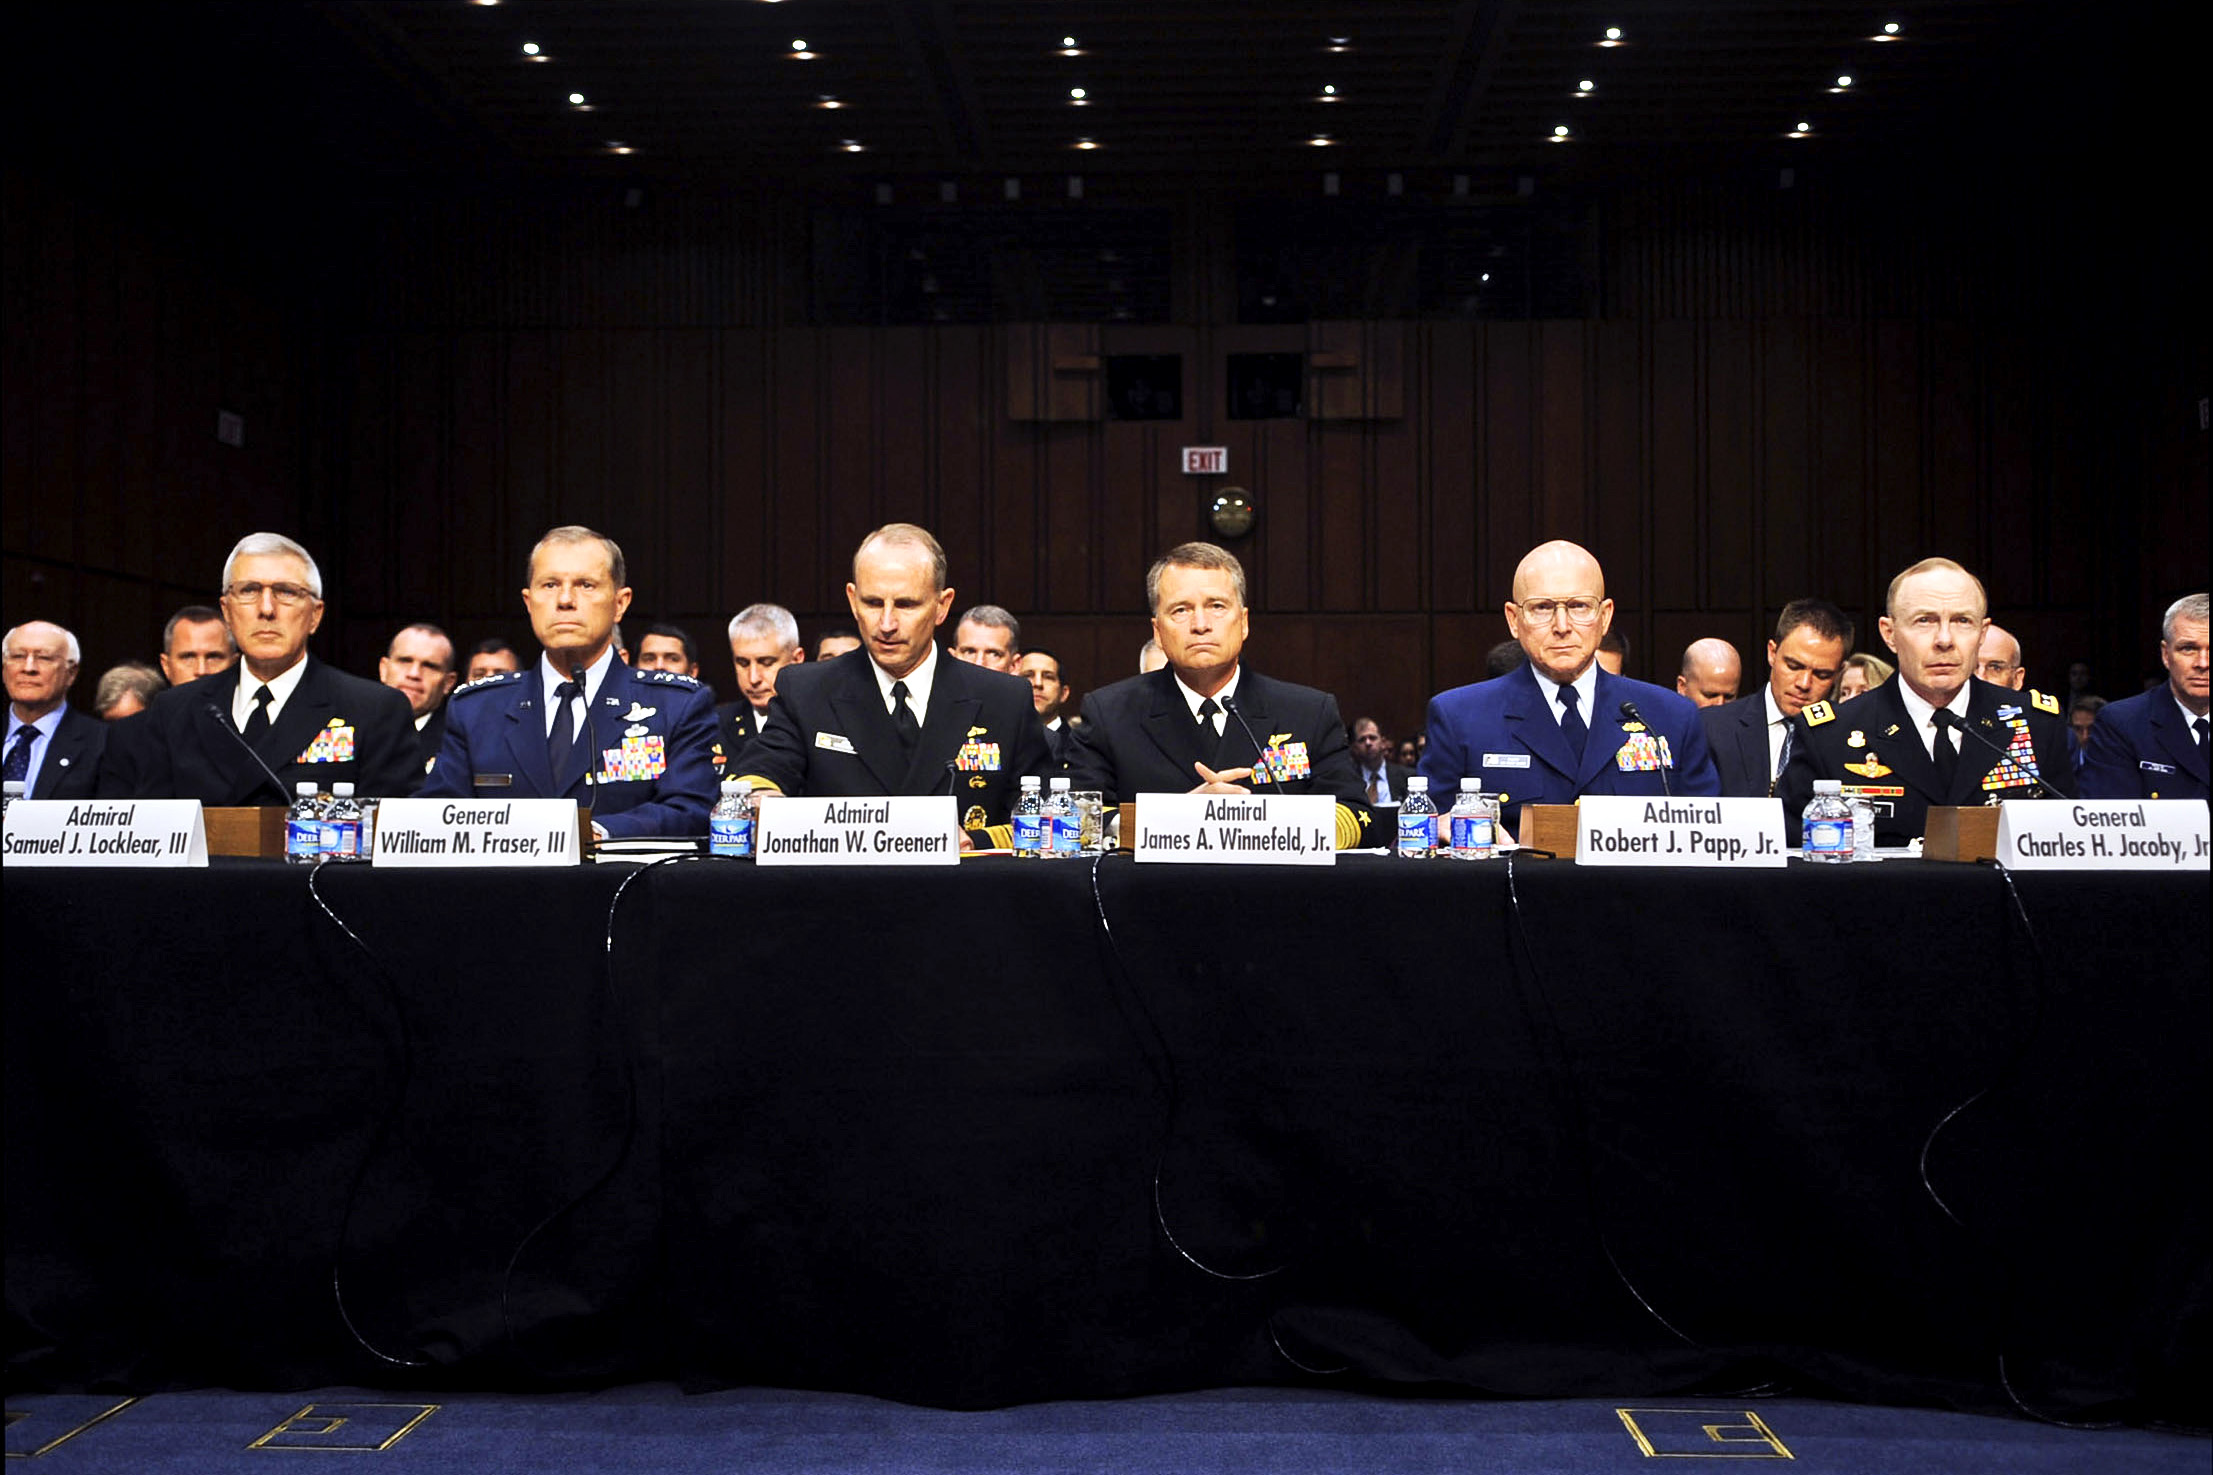 U.S. Northern Command as they testify on the Law of the Sea before the Senate Foreign Relations Committee in Washington, D.C.